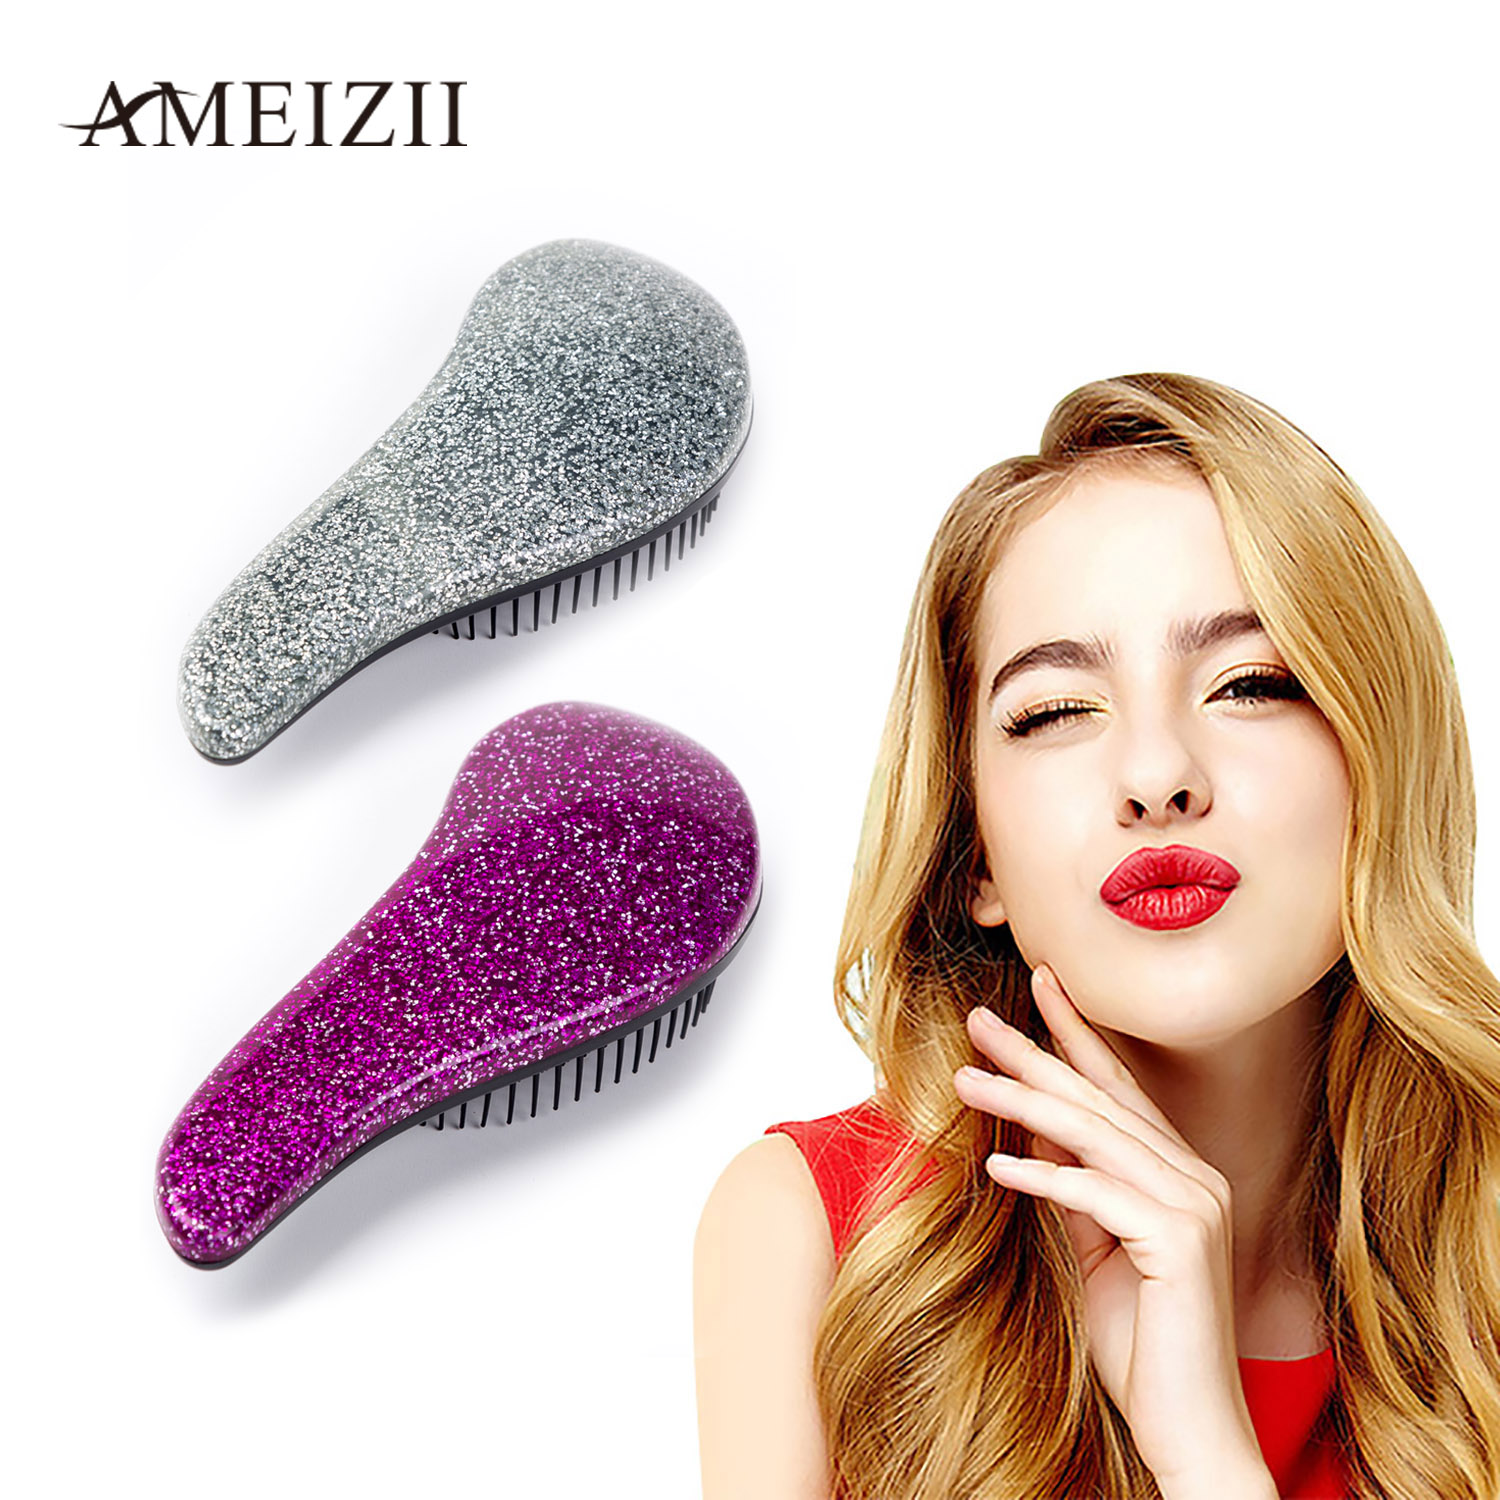 AMEIZII 1Pcs Magic Handle Anti-static Hair Brush Comb Hair Brush Styling Tools Shower Electroplate Salon Styling For Women Girls